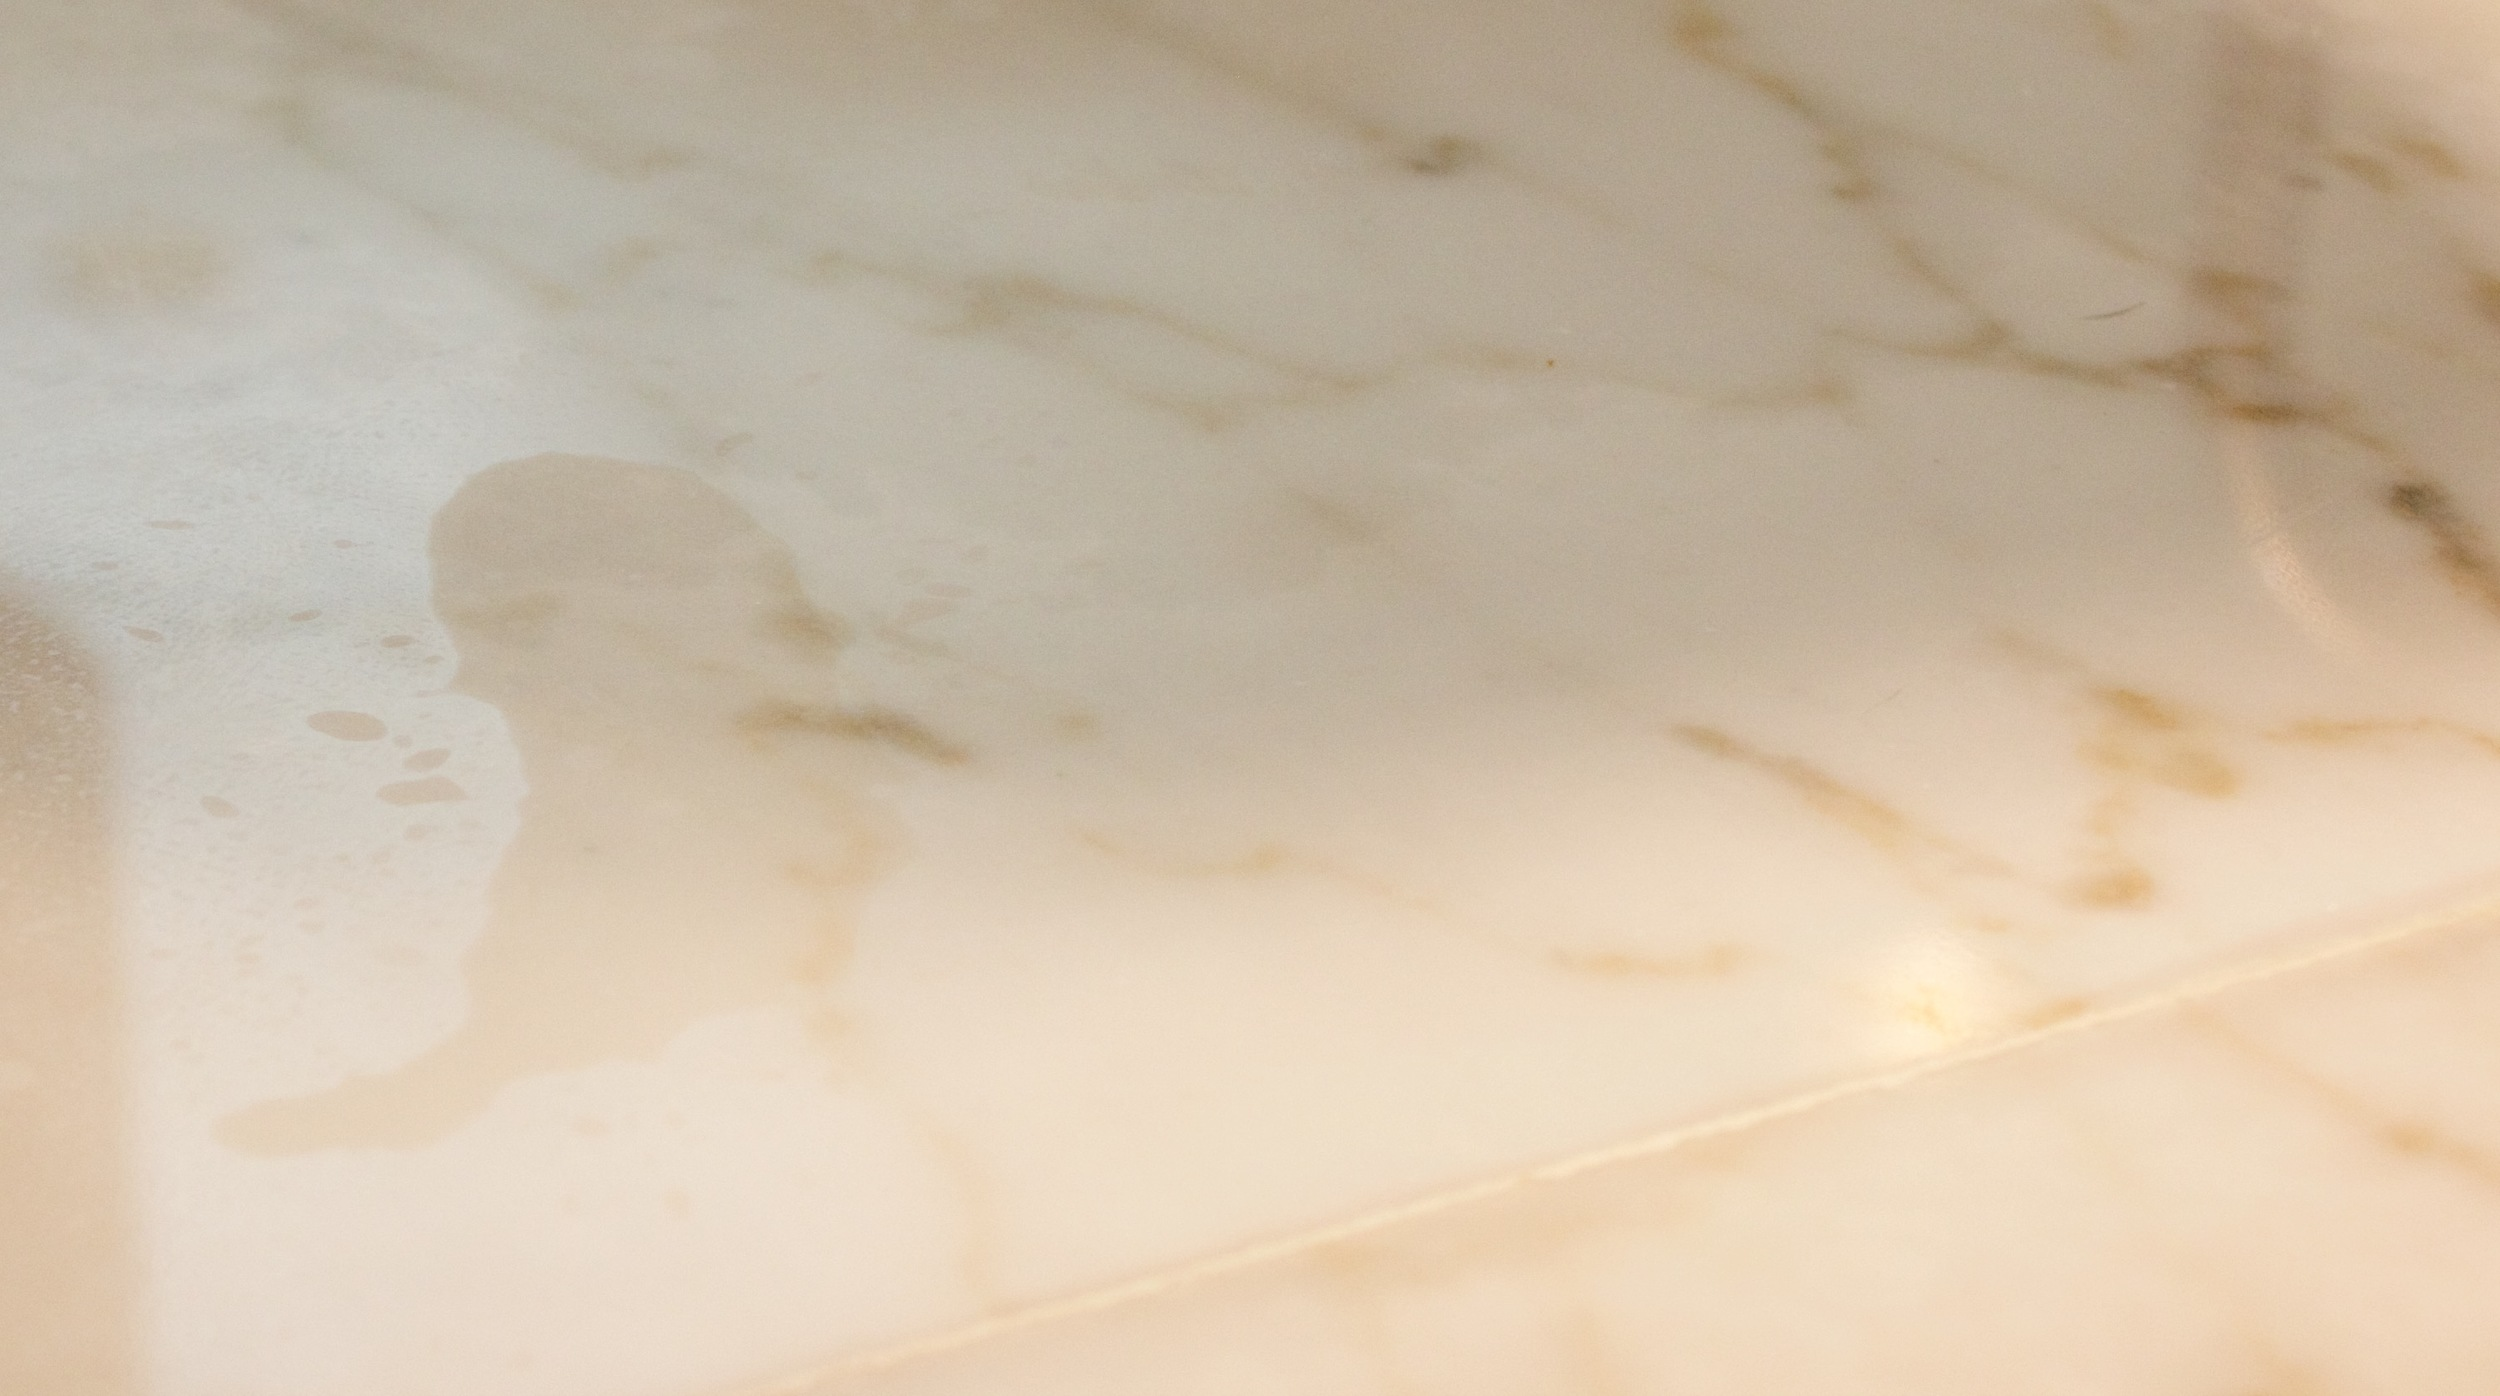 Close up of an etch mark on the gorgeous Valley Gold Vein countertop